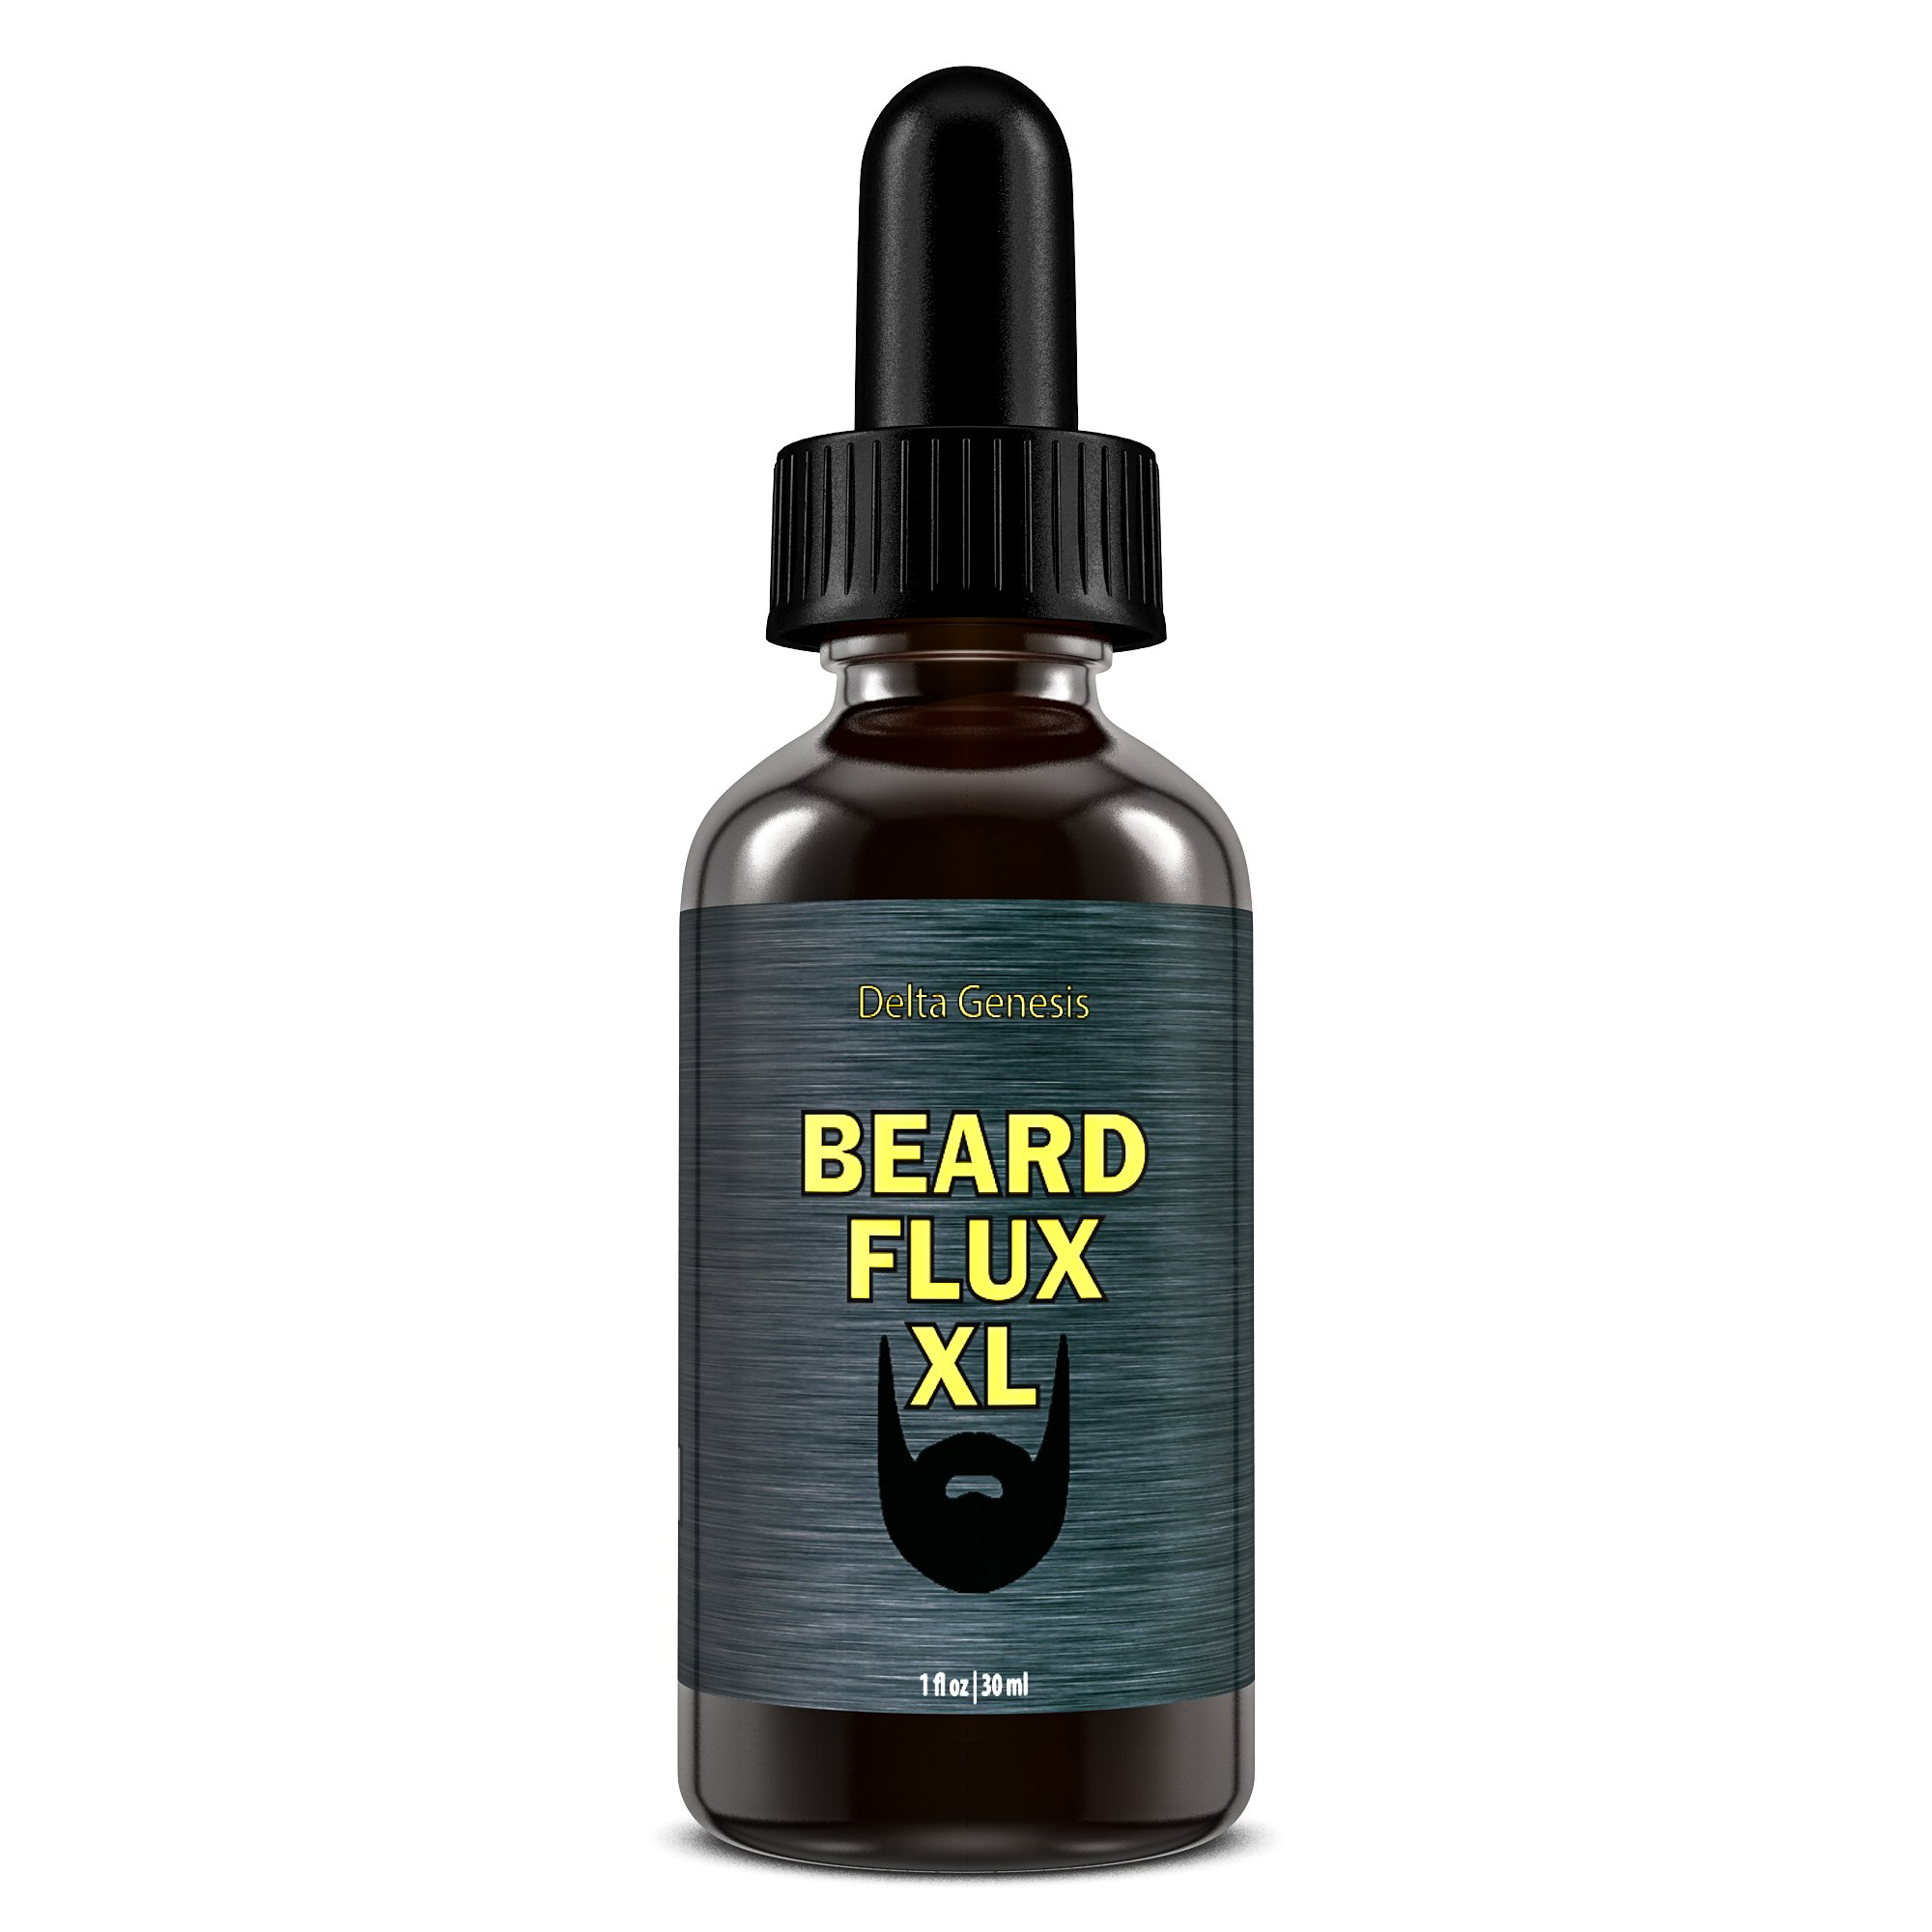 Beard Flux XL | Caffeine Beard Growth Stimulating Oil for Facial Hair Grow | Fuel Healthy Growth | Fragrance Free Beard Oil